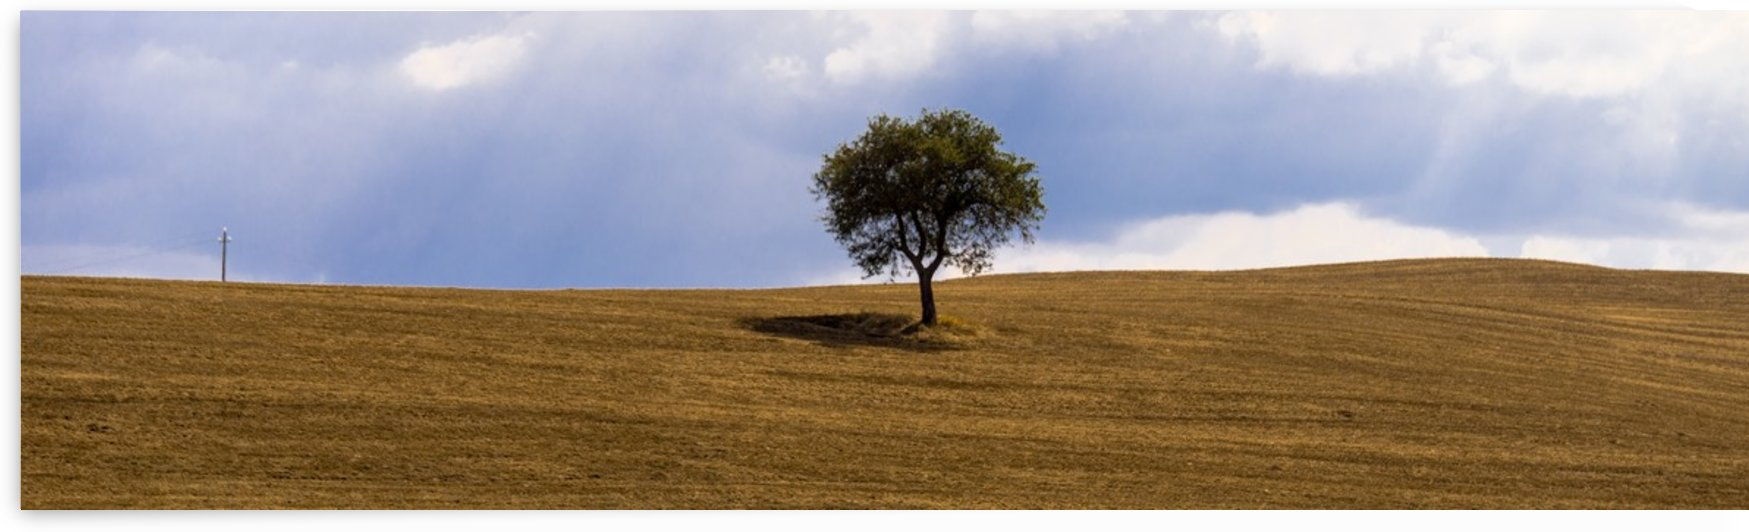 Tuscany Tree by Fabien Dormoy